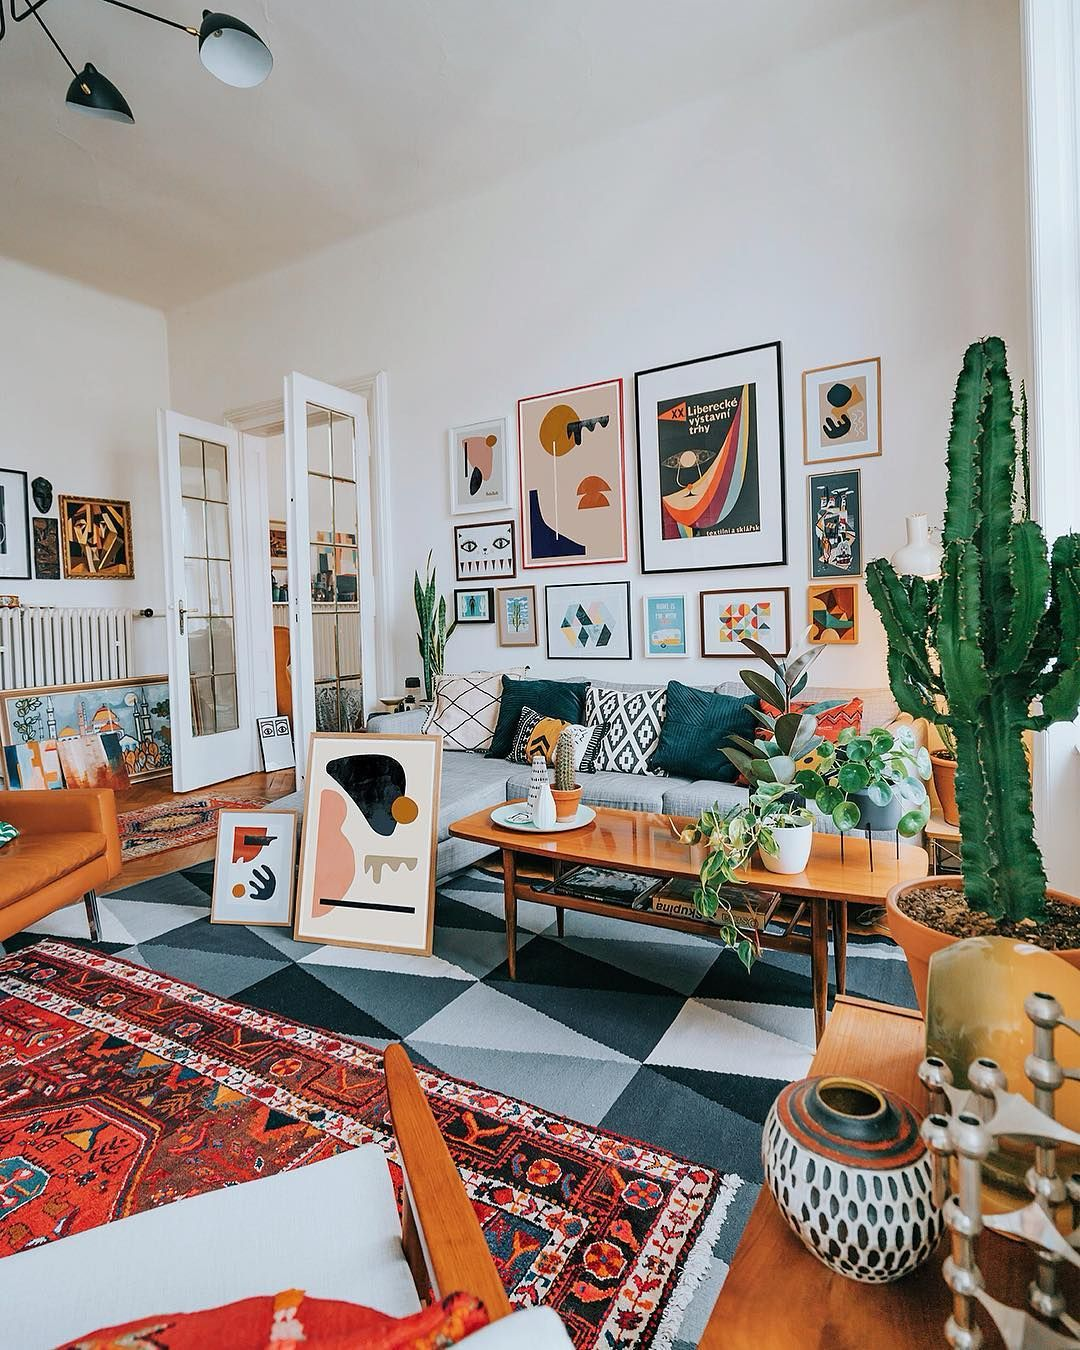 Jan skacelik on instagram  chappy sunday still super tired here after the market how is your day it so cold outside  need some vietnamese soup also interior design ideas living room small spaces decor in rh pinterest